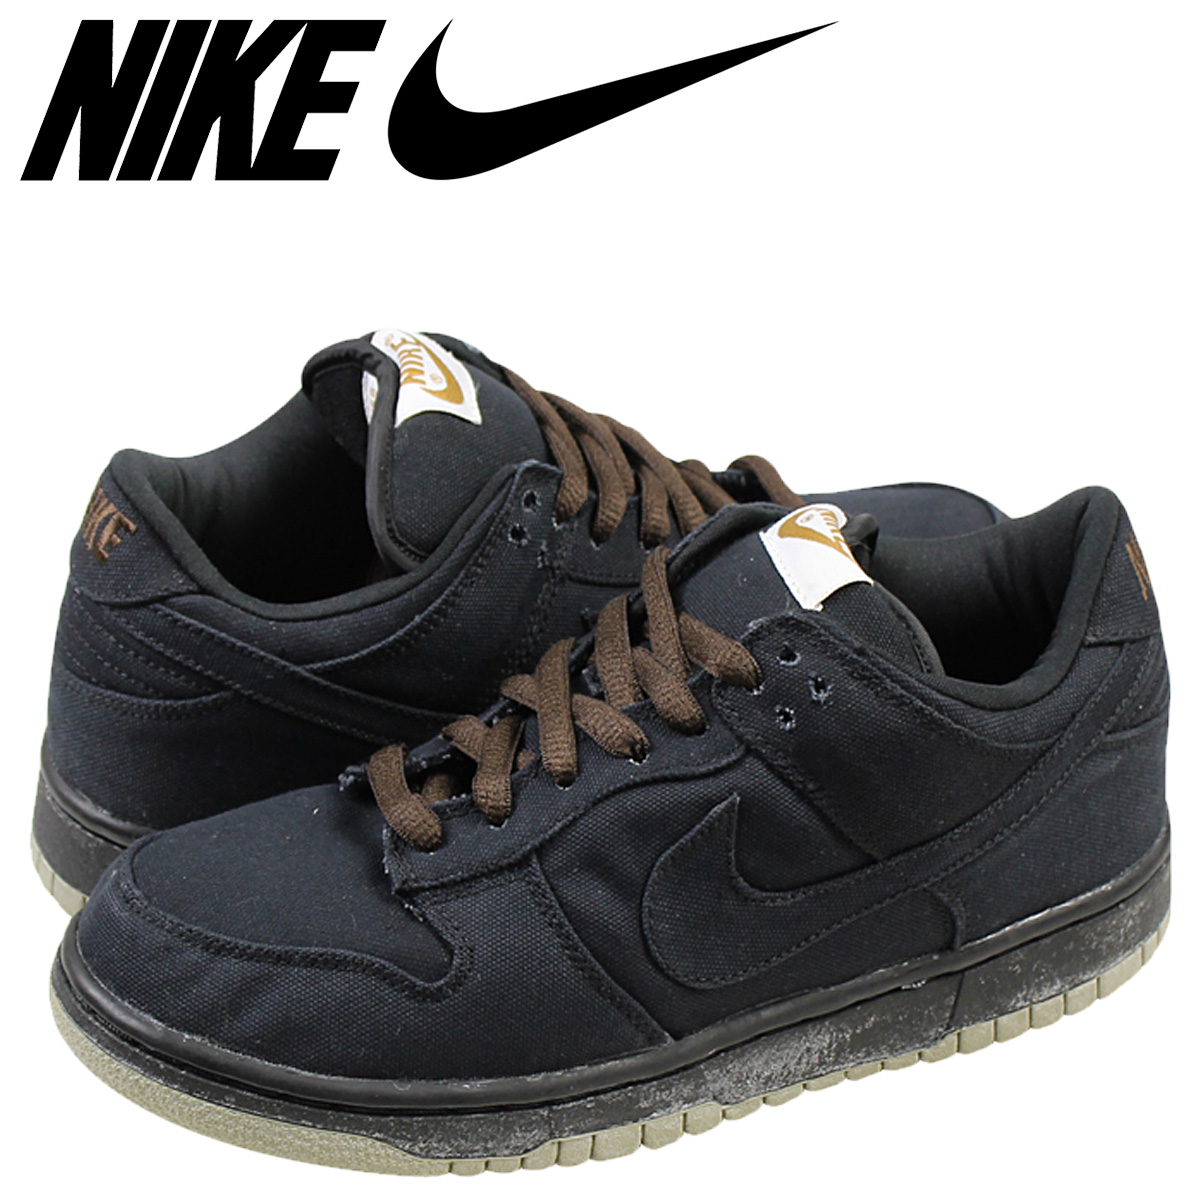 size 40 af273 a5ef2 Nike NIKE dunk SB sneakers DUNK LOW PRO SB CARHARTT COBALT dunk low pro car  heart 304,292-004 black men